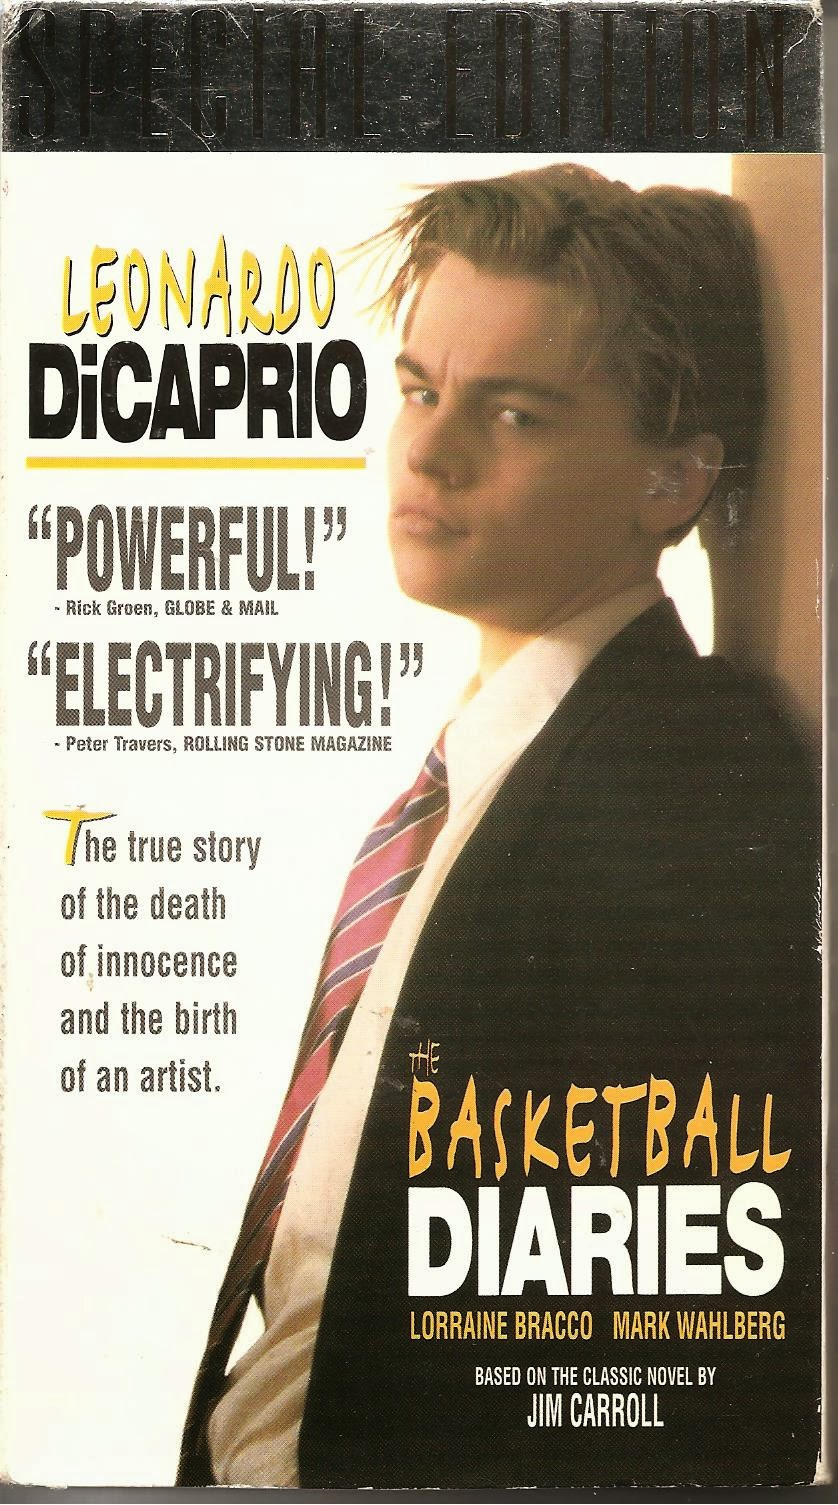 The Basketball Diaries... Mark Wahlberg